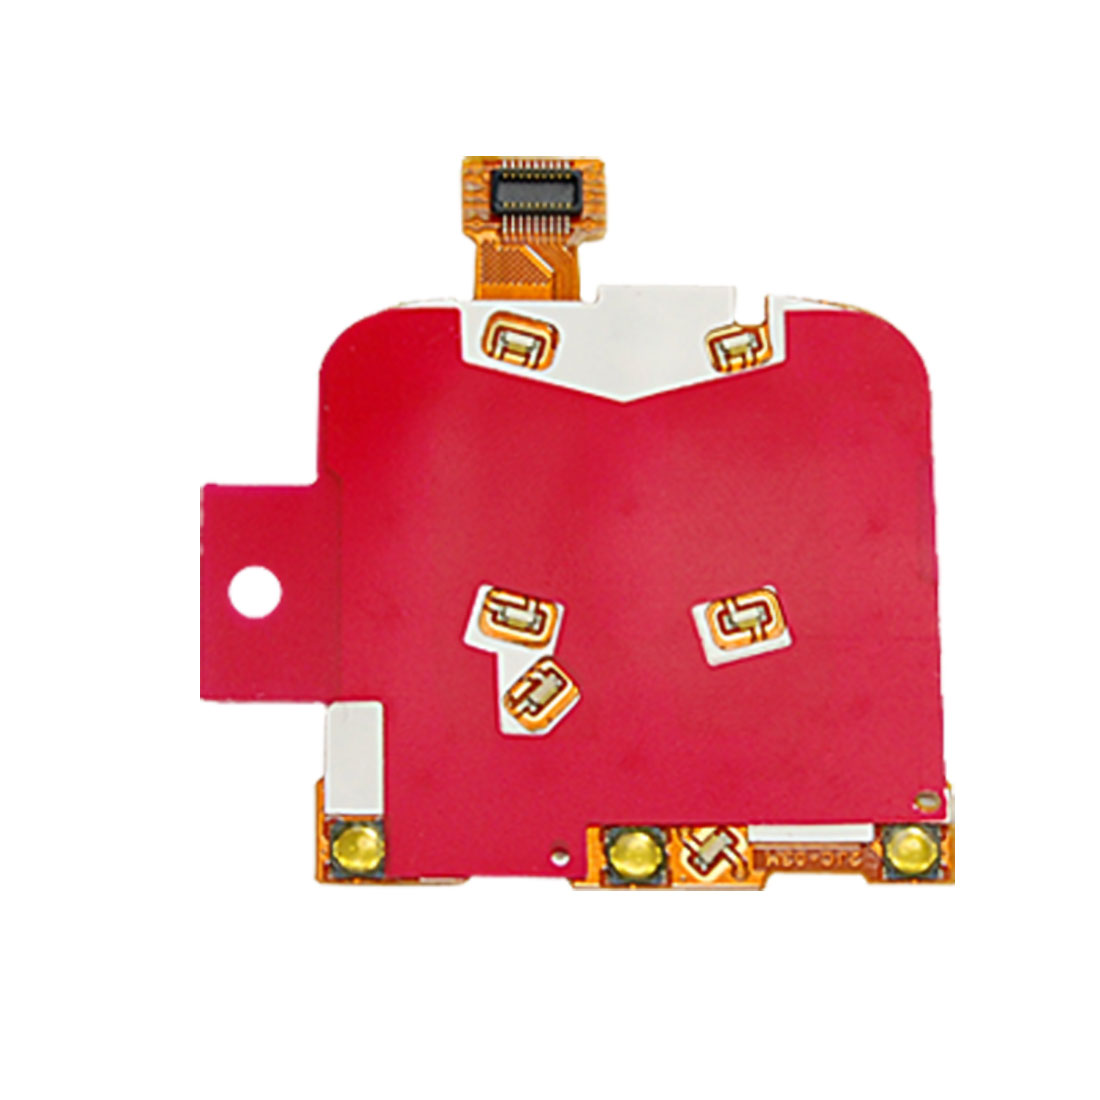 Keypad Board Keyboard Flex Cable for Nokia 6220C 6220 Classic